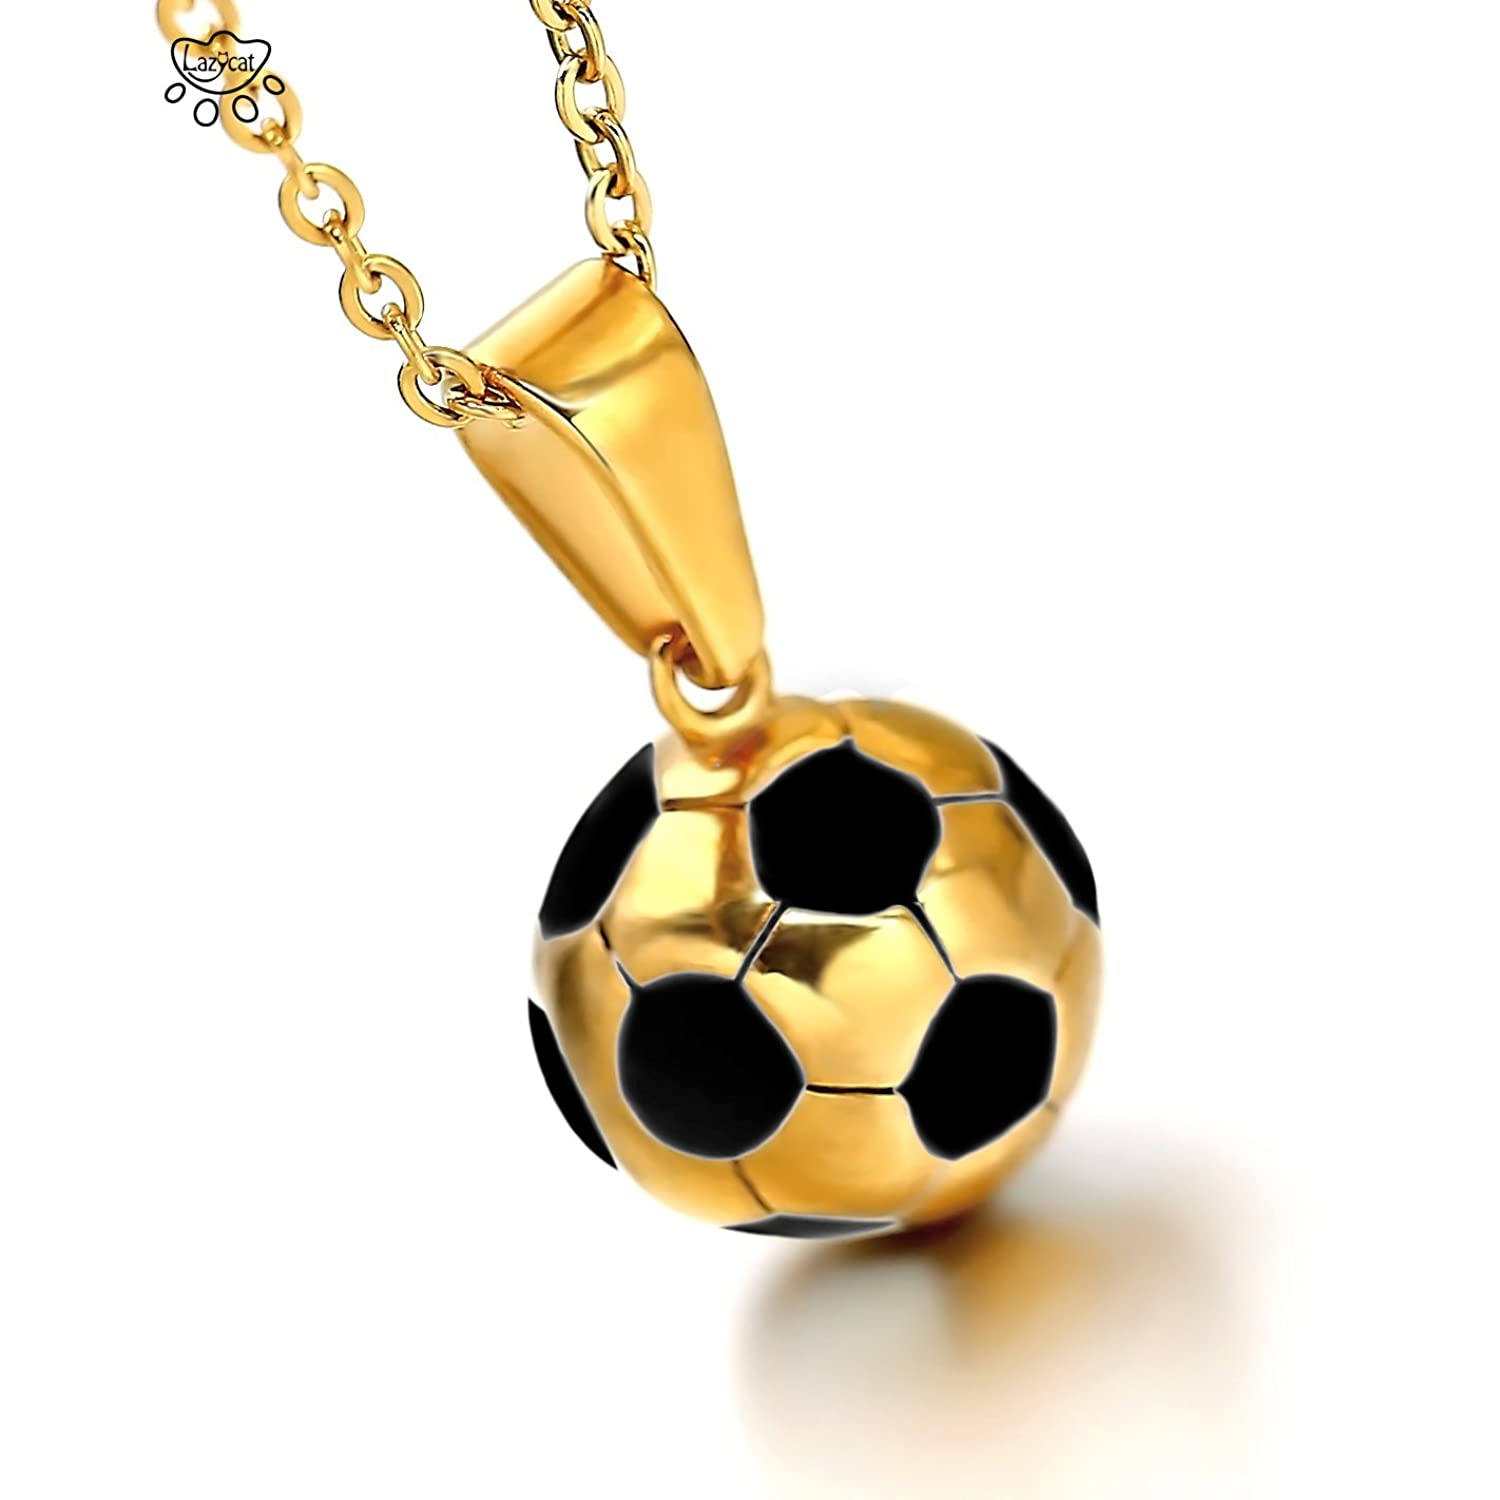 necklace il english medal coin lions soccer fullxfull london united products france uk pendant squad fifa the football cup england kingdom world nxkz